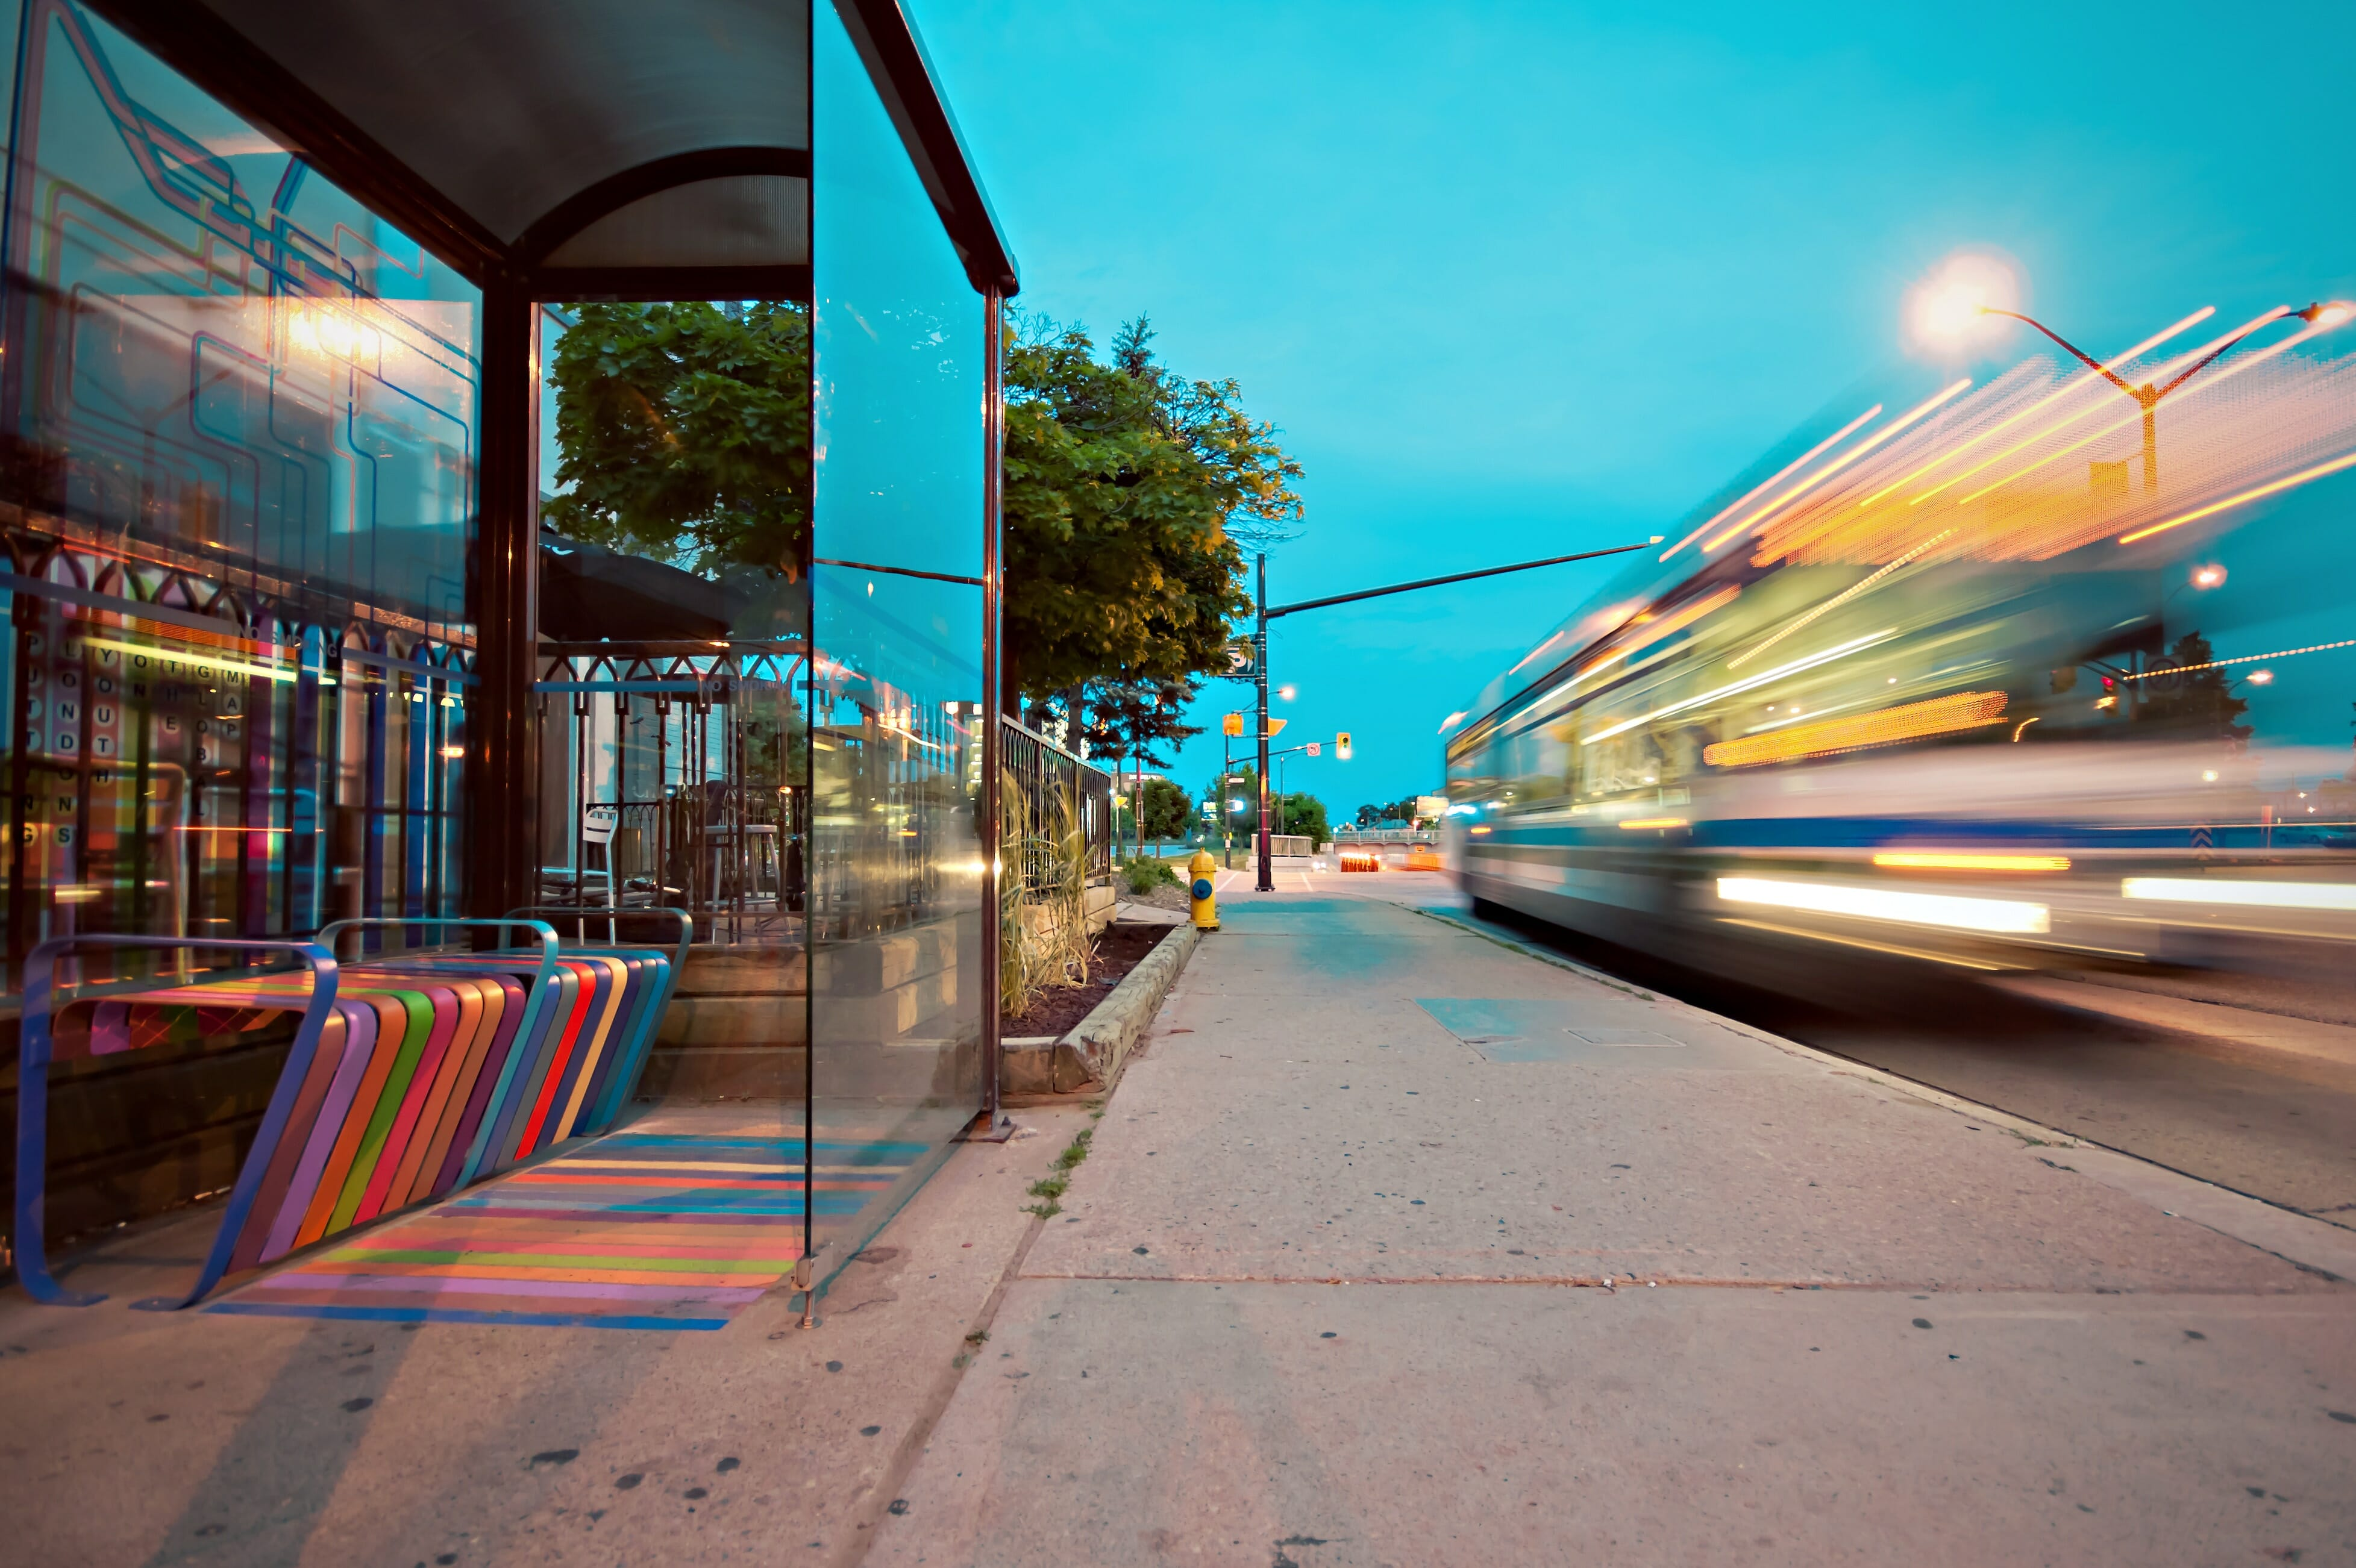 A long exposure of a bus driving past a glass bus stop on its way to Brisbane airport